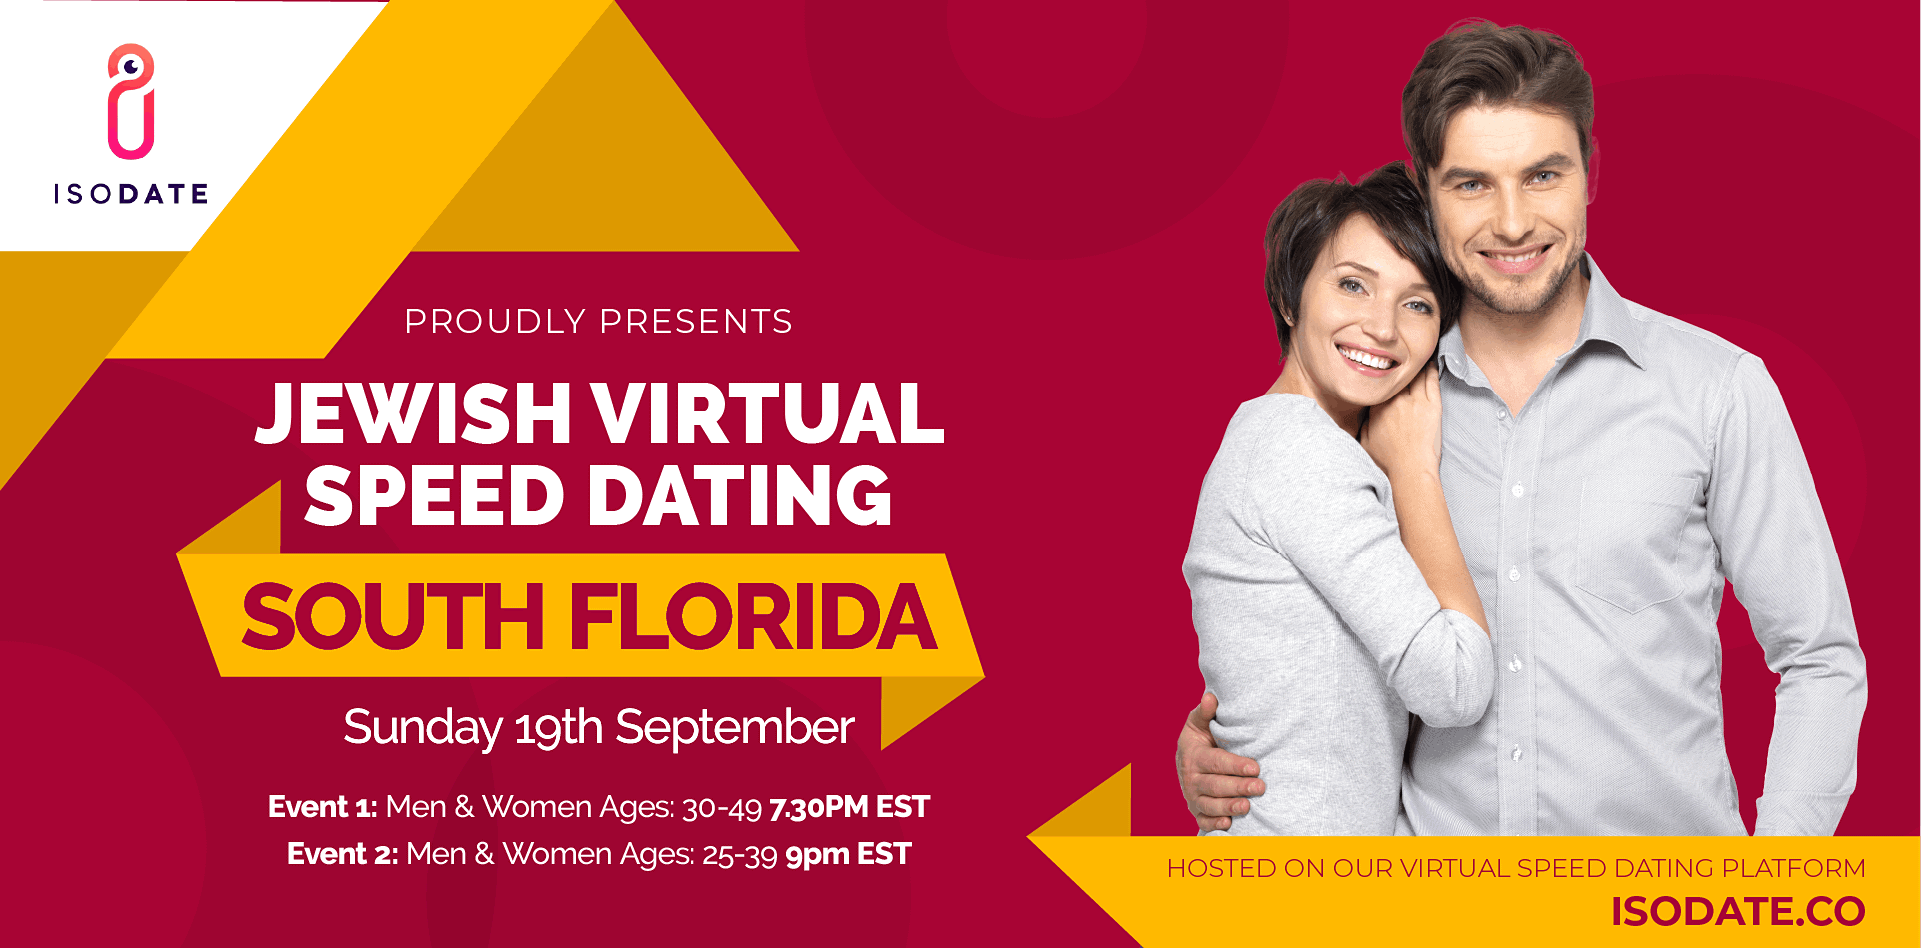 Isodate's South Florida Jewish Virtual Speed Dating - Swipe Less, Date More